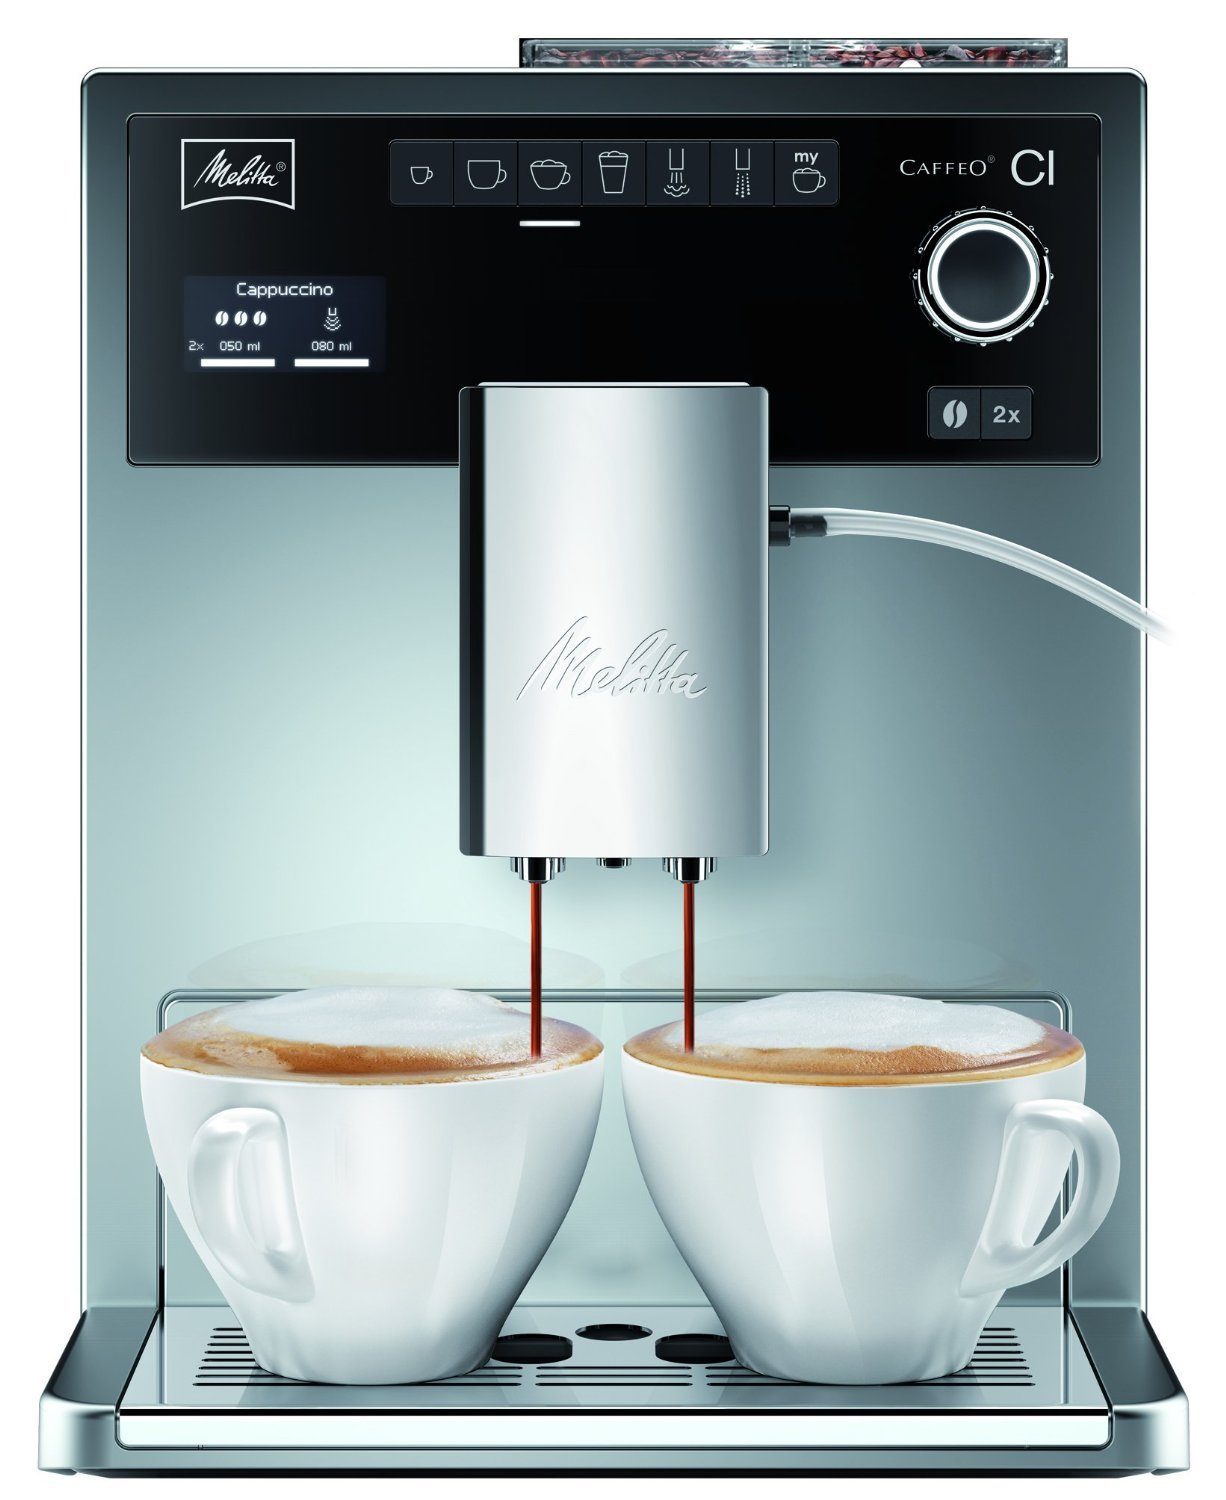 melitta e 970 306 kaffeevollautomat expertentesten. Black Bedroom Furniture Sets. Home Design Ideas